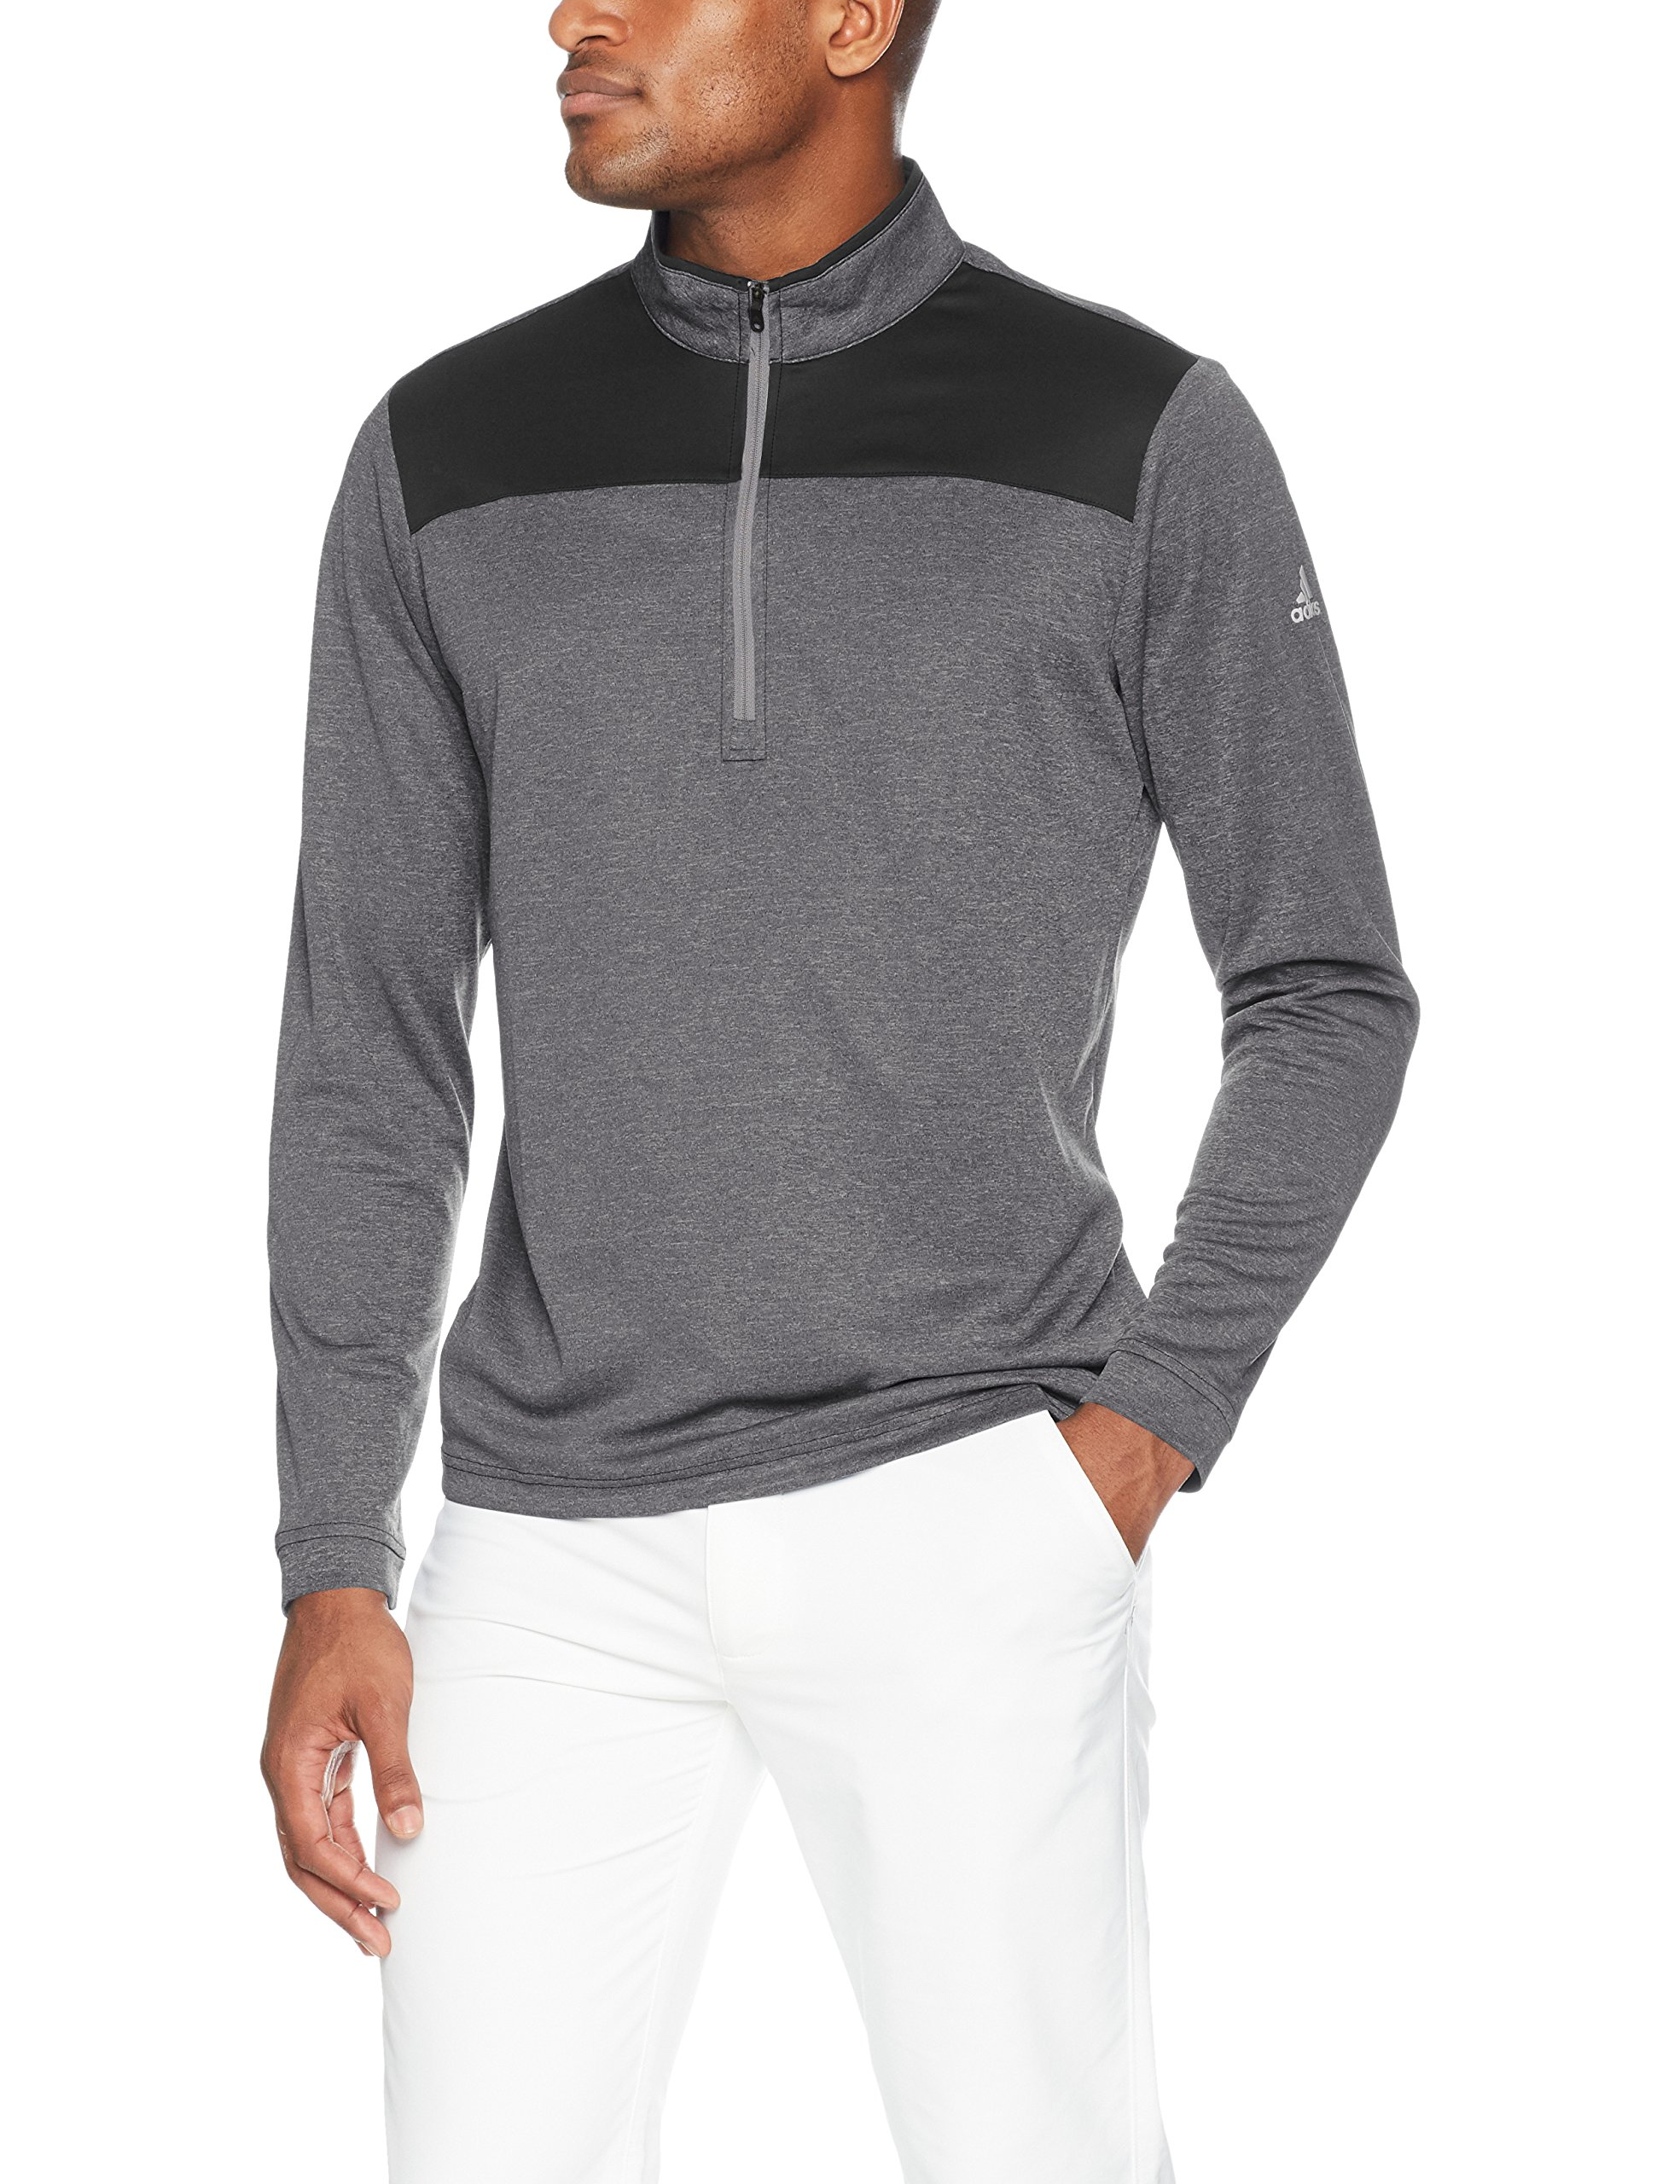 adidas Golf Men's Lightweight UPF 1/4 Zip Pullover Jacket, Carbon Heather, Large by adidas